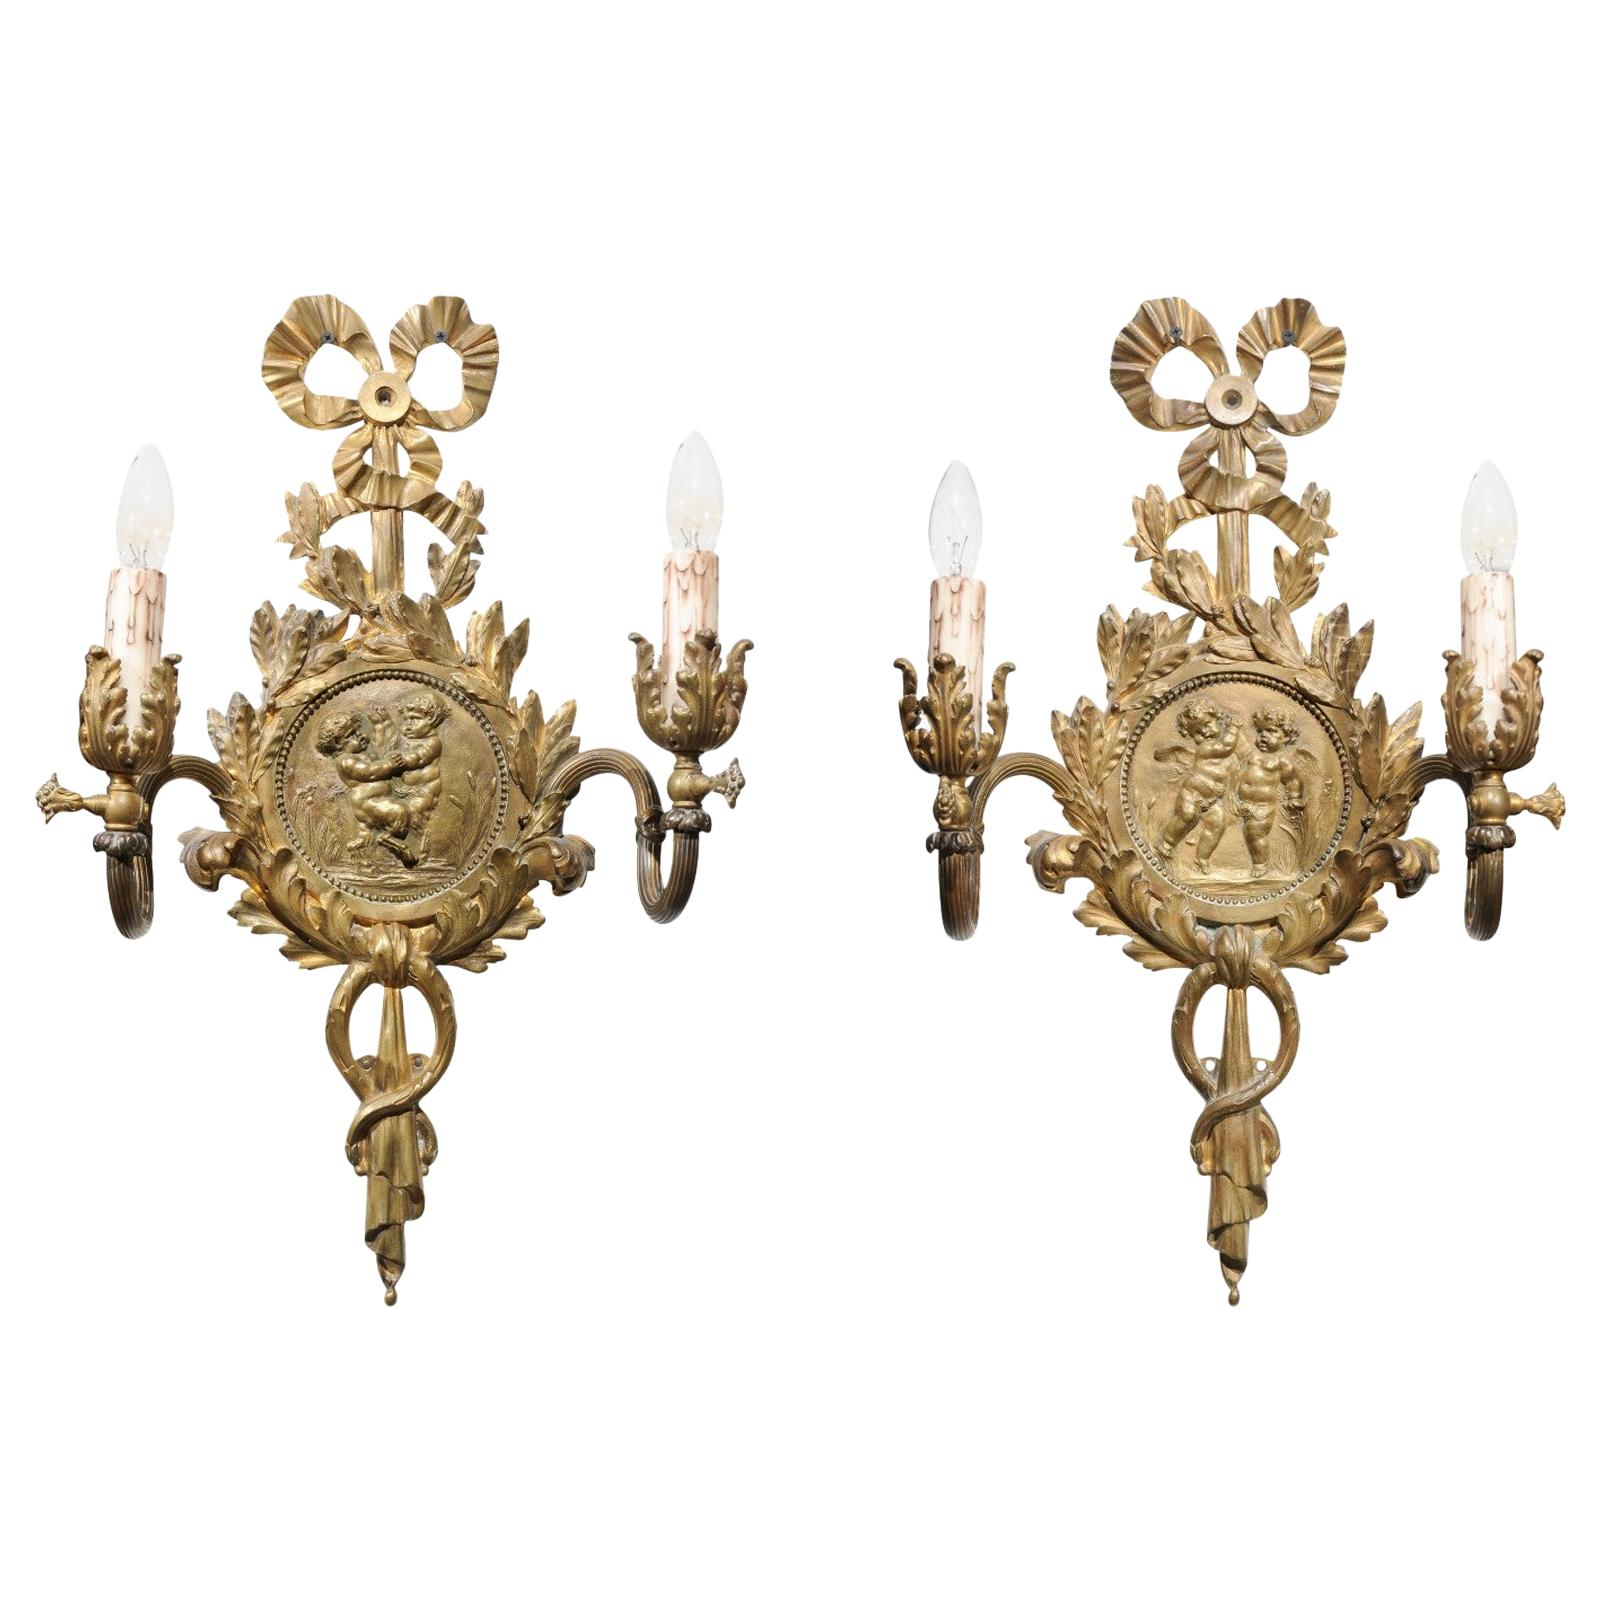 Pair of 1890s French Two-Light Brass Sconces with Ribbon, Cherubs and Satyrs